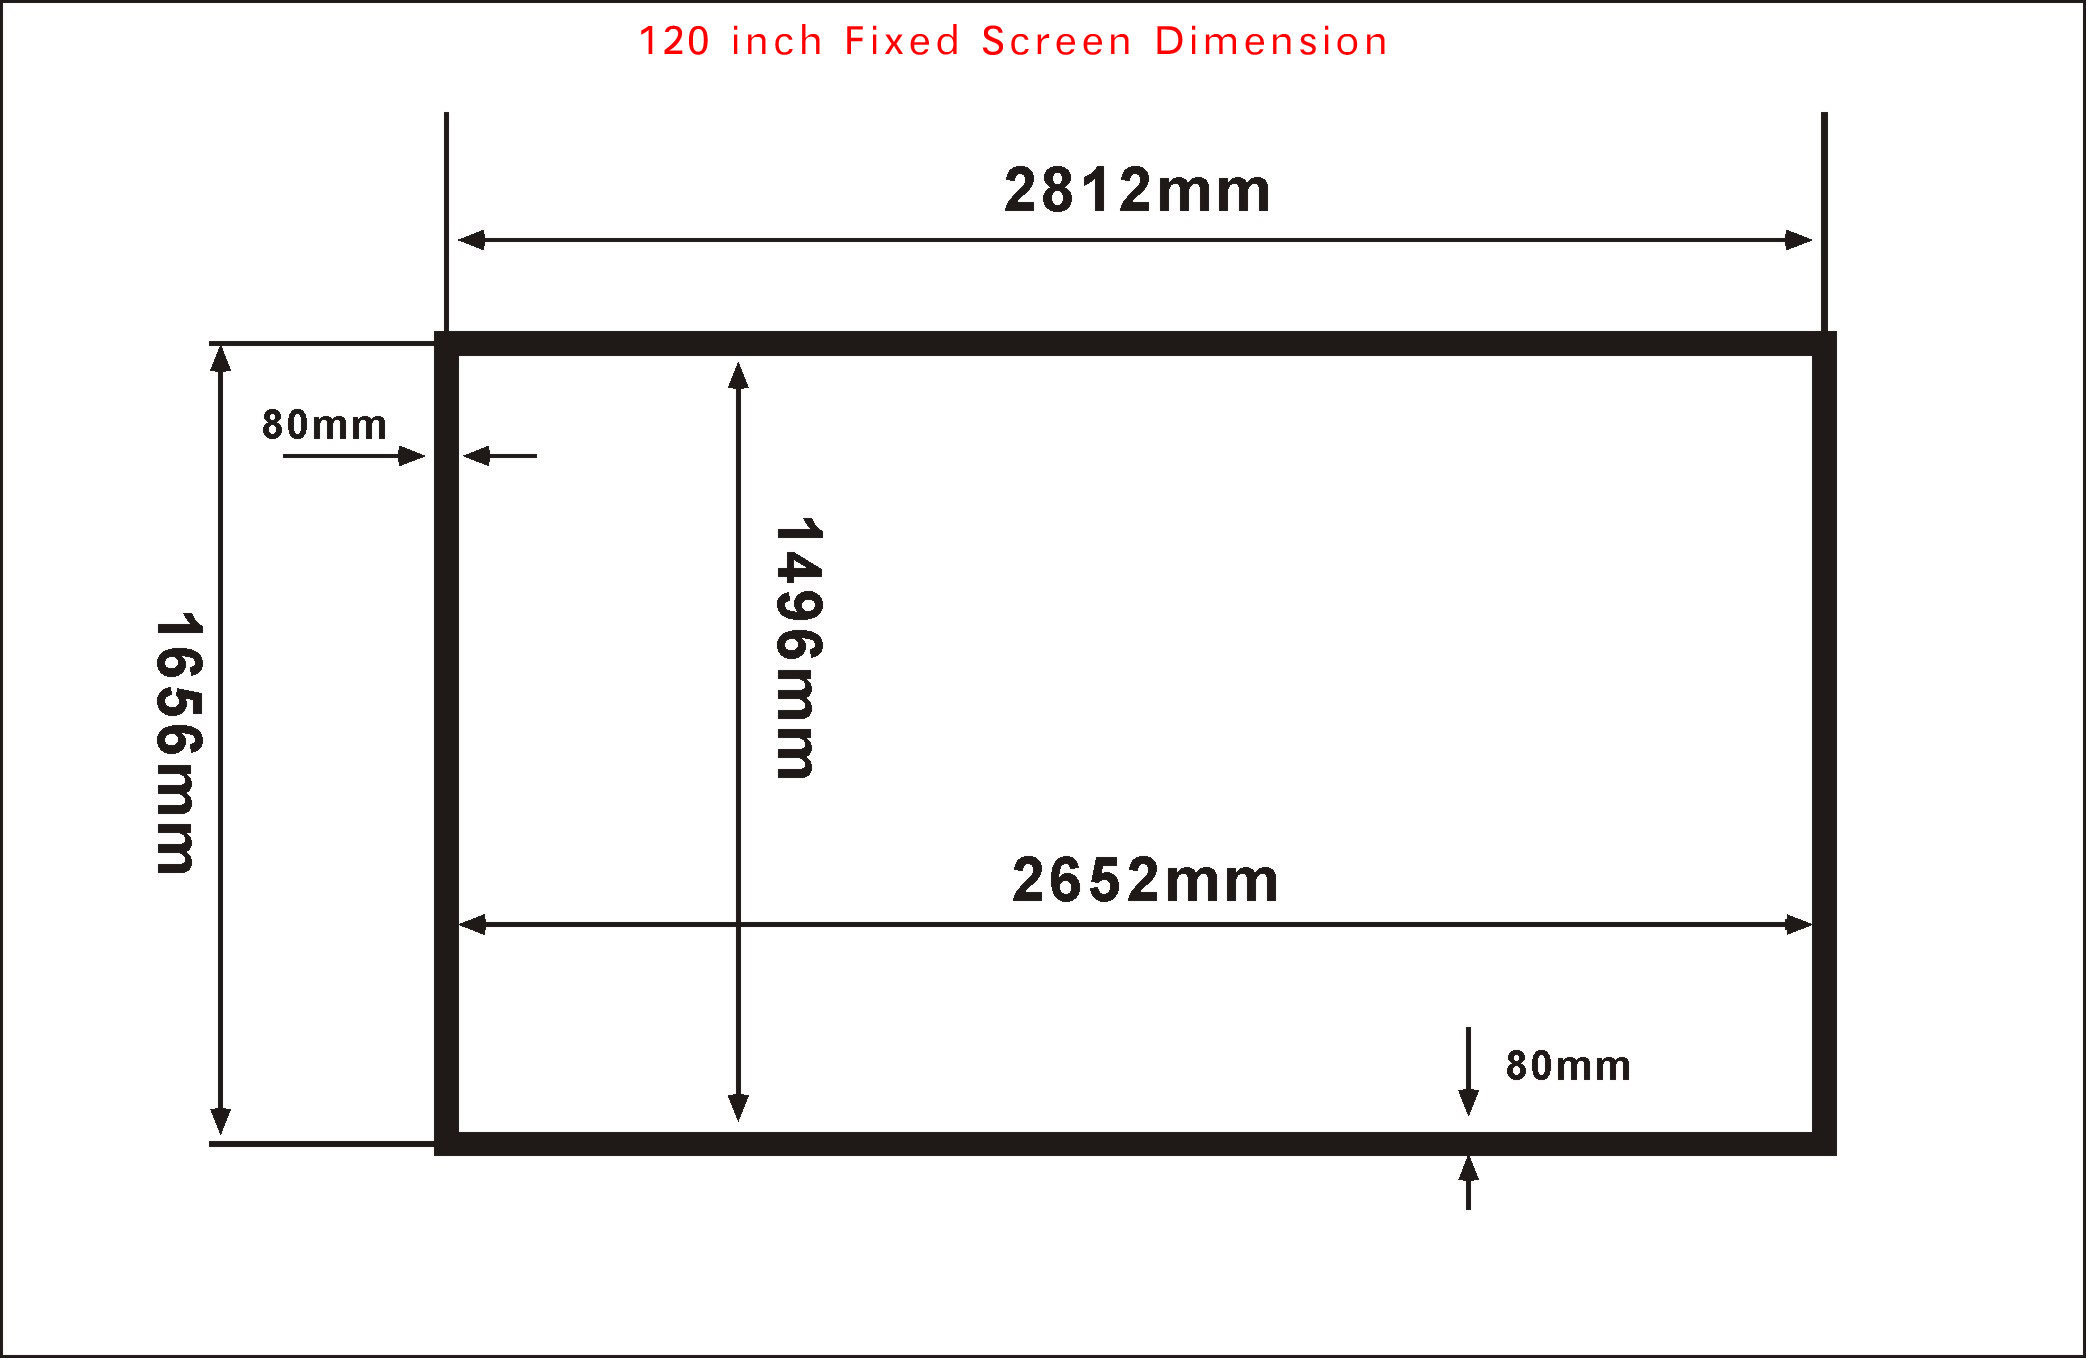 Amazing image 3d projection screen 120inch